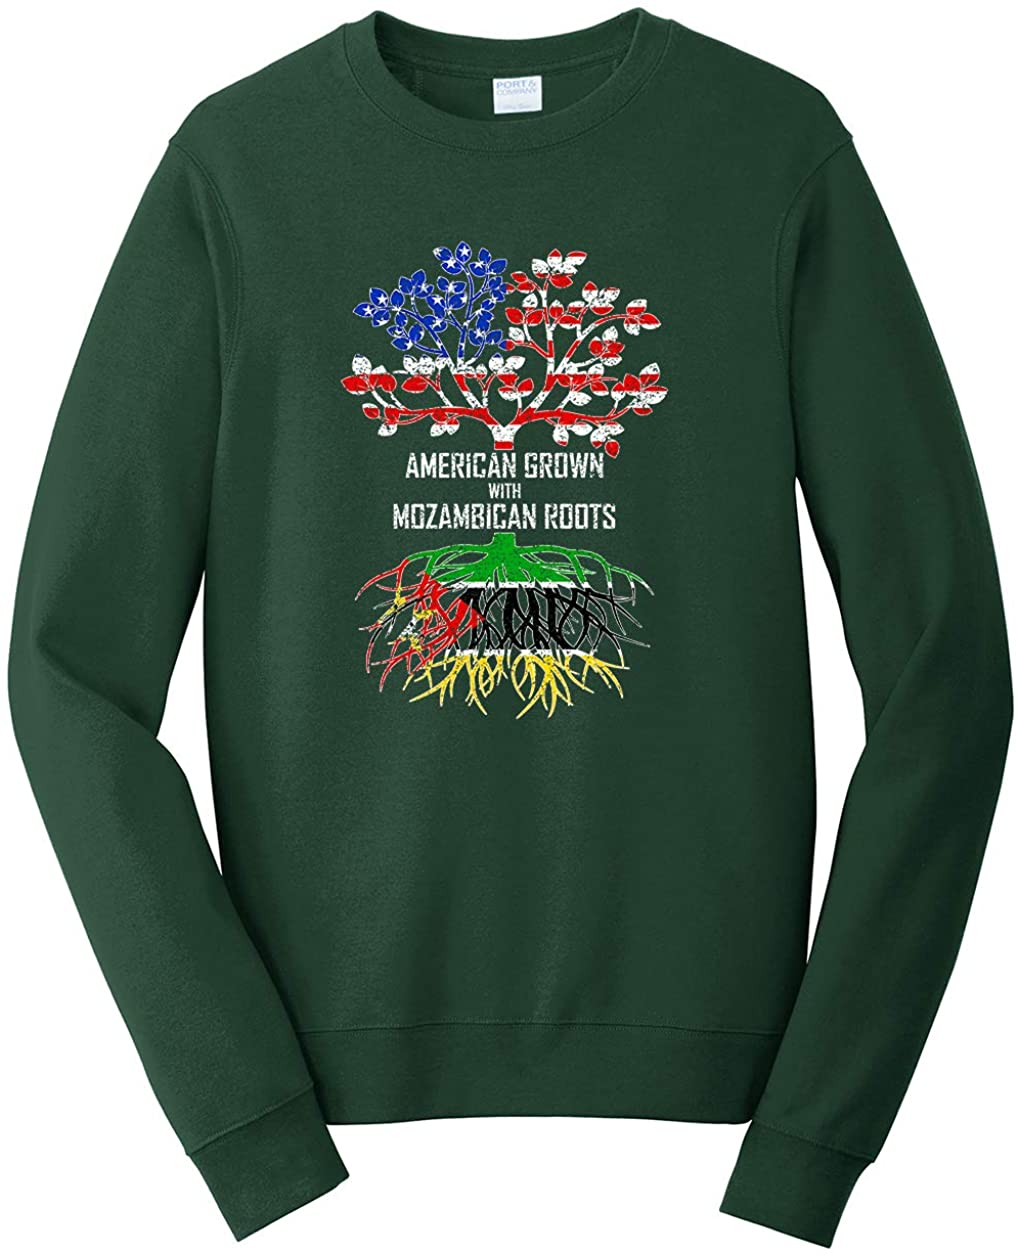 Tenacitee Unisex American Grown with Mozambican Roots Sweatshirt